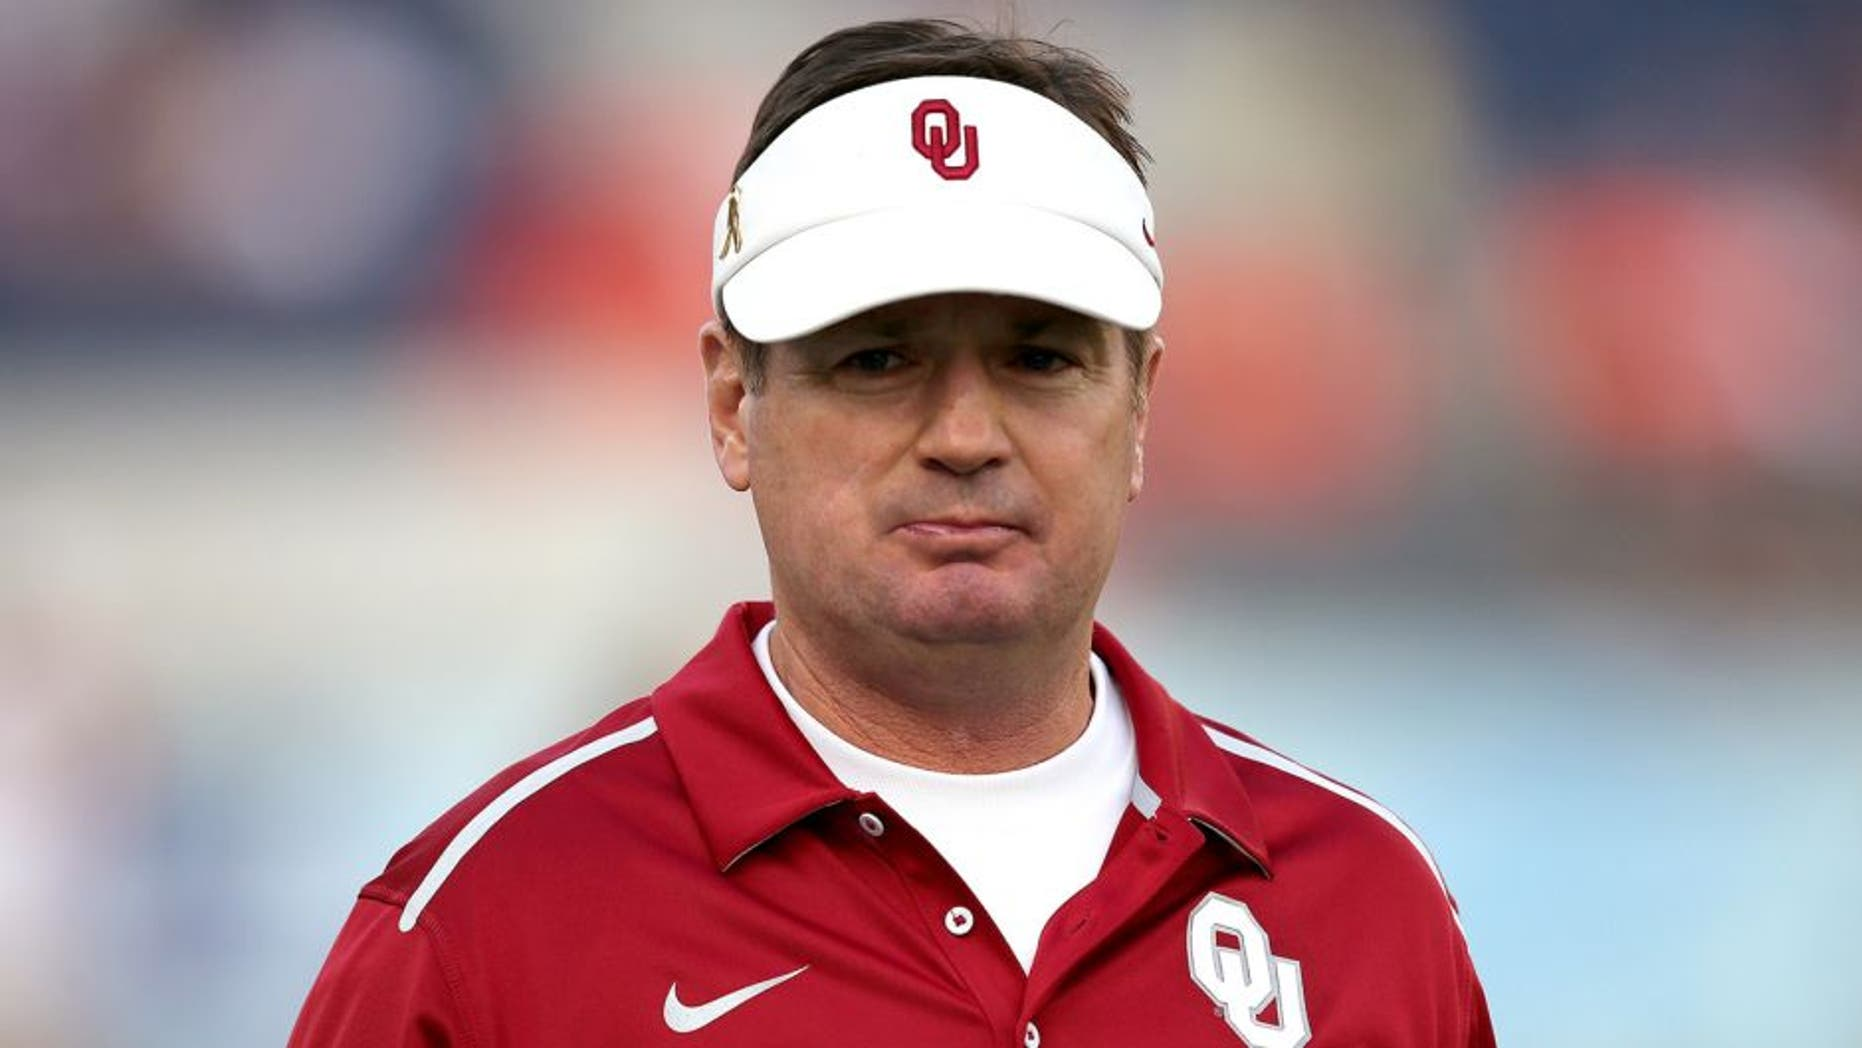 Head coach Bob Stoops of the Oklahoma Sooners is seen during the NCAA Russell Athletic Bowl between the Clemson Tigers and the Oklahoma Sooners on December 29, 2014 in Orlando, Florida. Clemson won the game by a score of 40-6. (Photo by Alex Menendez/Getty Images)